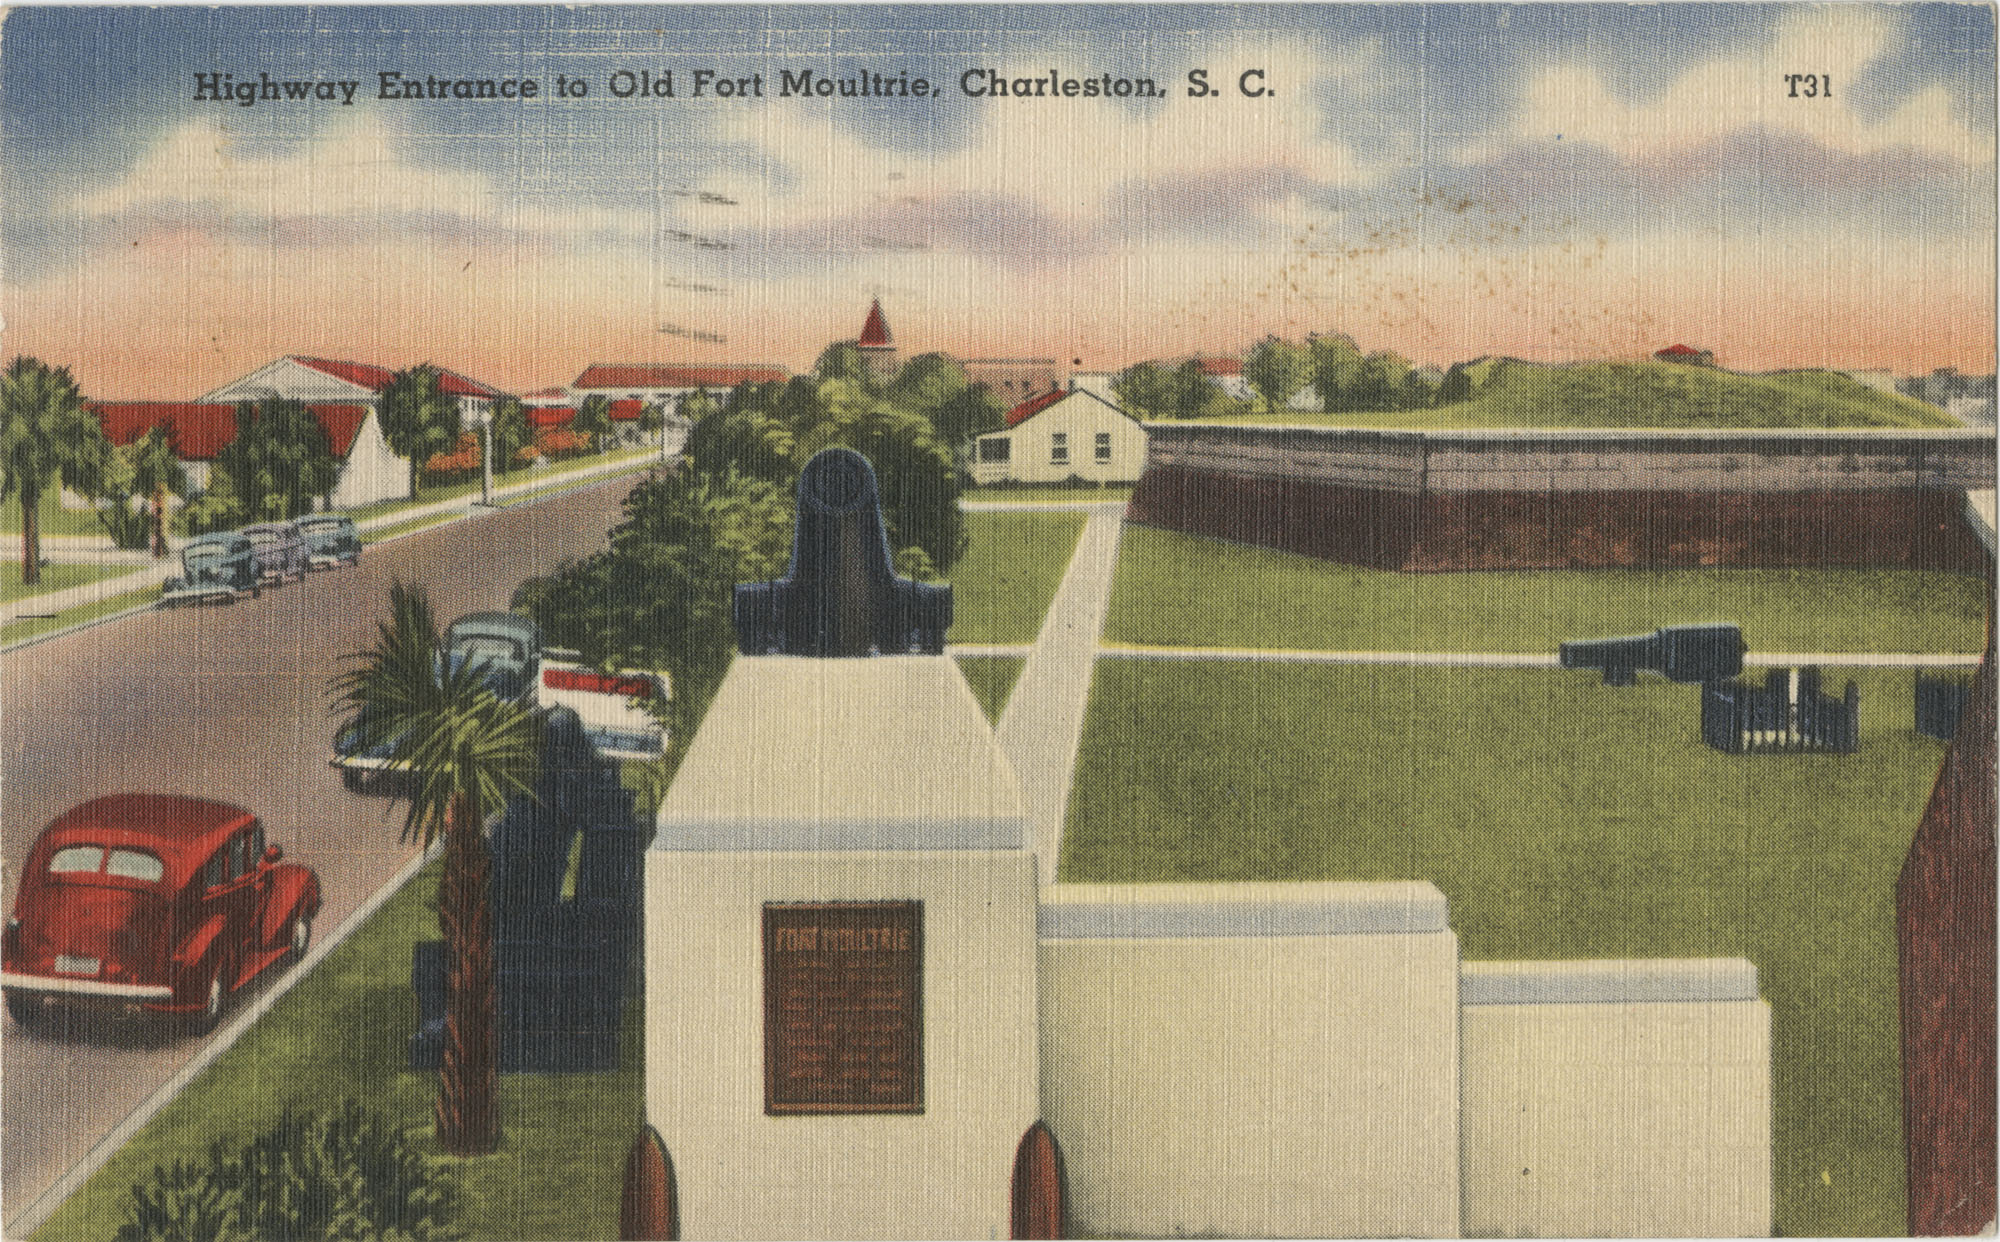 Highway Entrance to Old Fort Moultrie, Charleston, S.C.